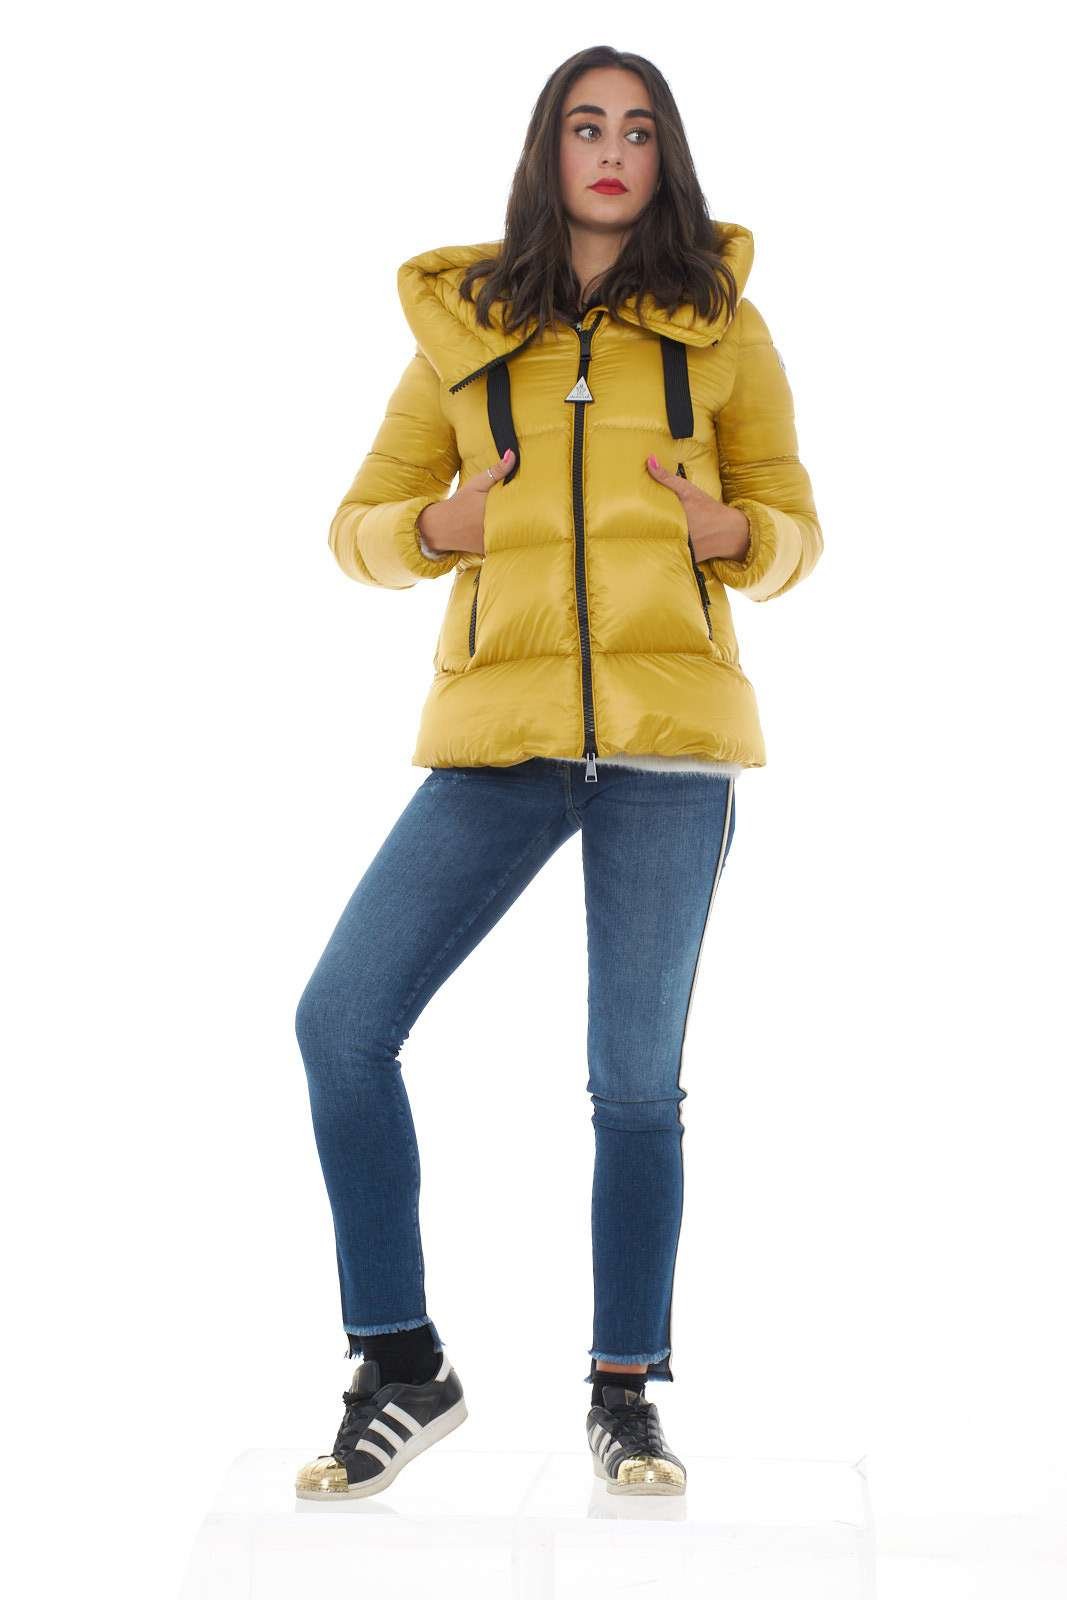 https://www.parmax.com/media/catalog/product/a/i/ai-outlet_parmax-piumino-donna-moncler-serin-d.jpg